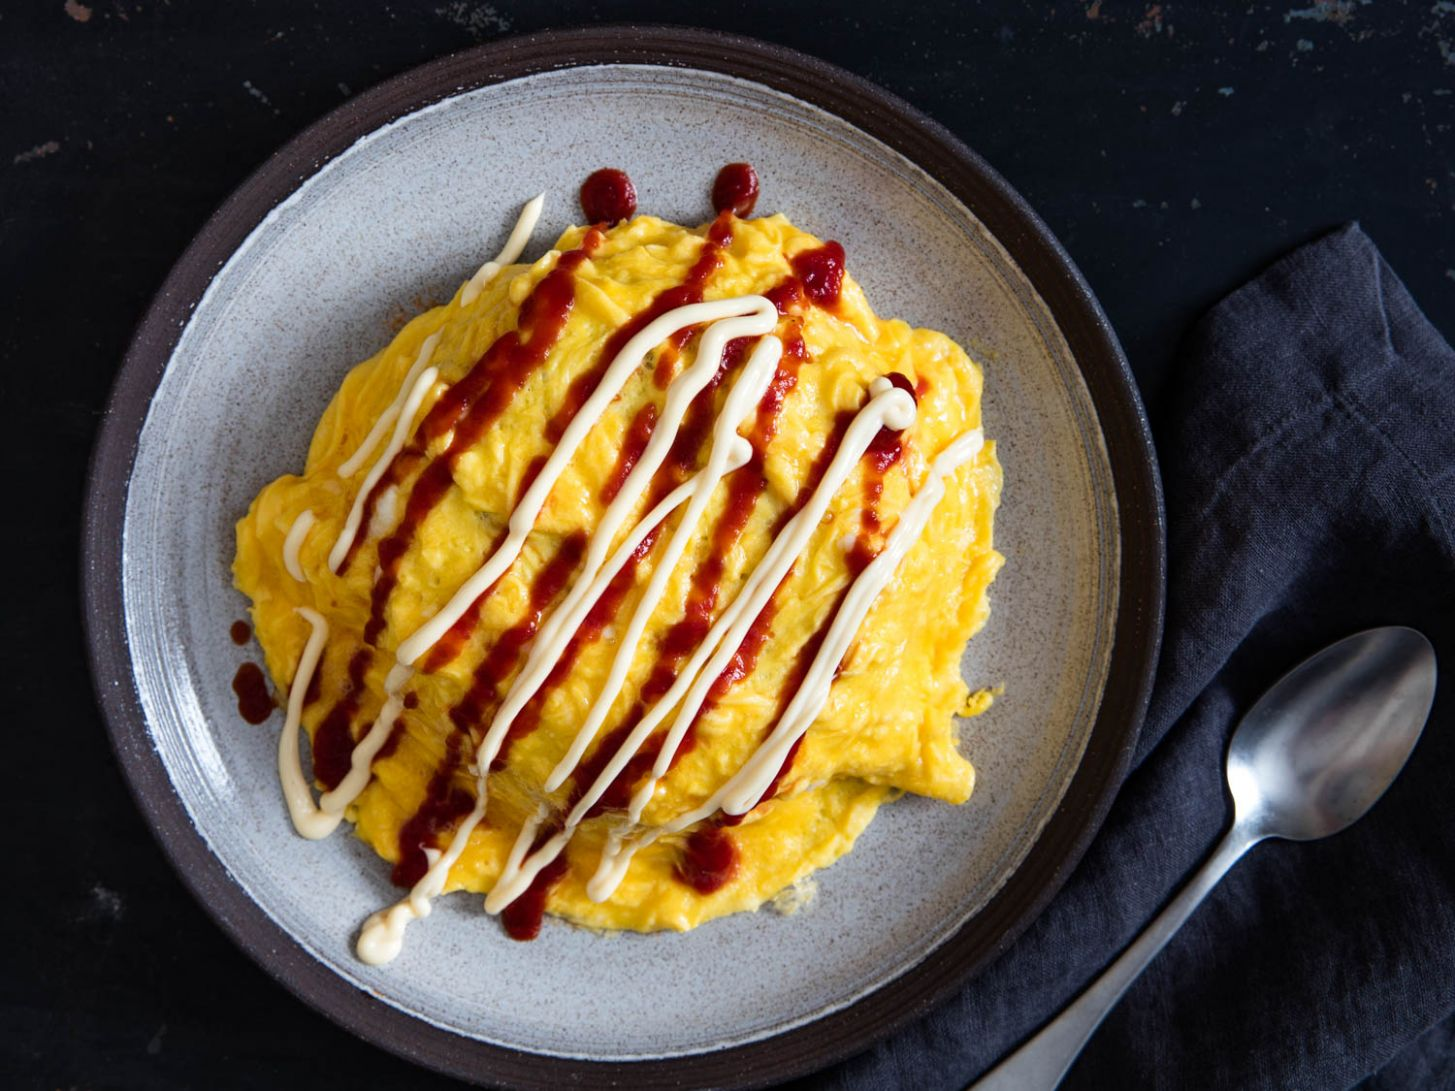 Japanese Omelette-Topped Ketchup Fried Rice With Chicken (Omurice) Recipe